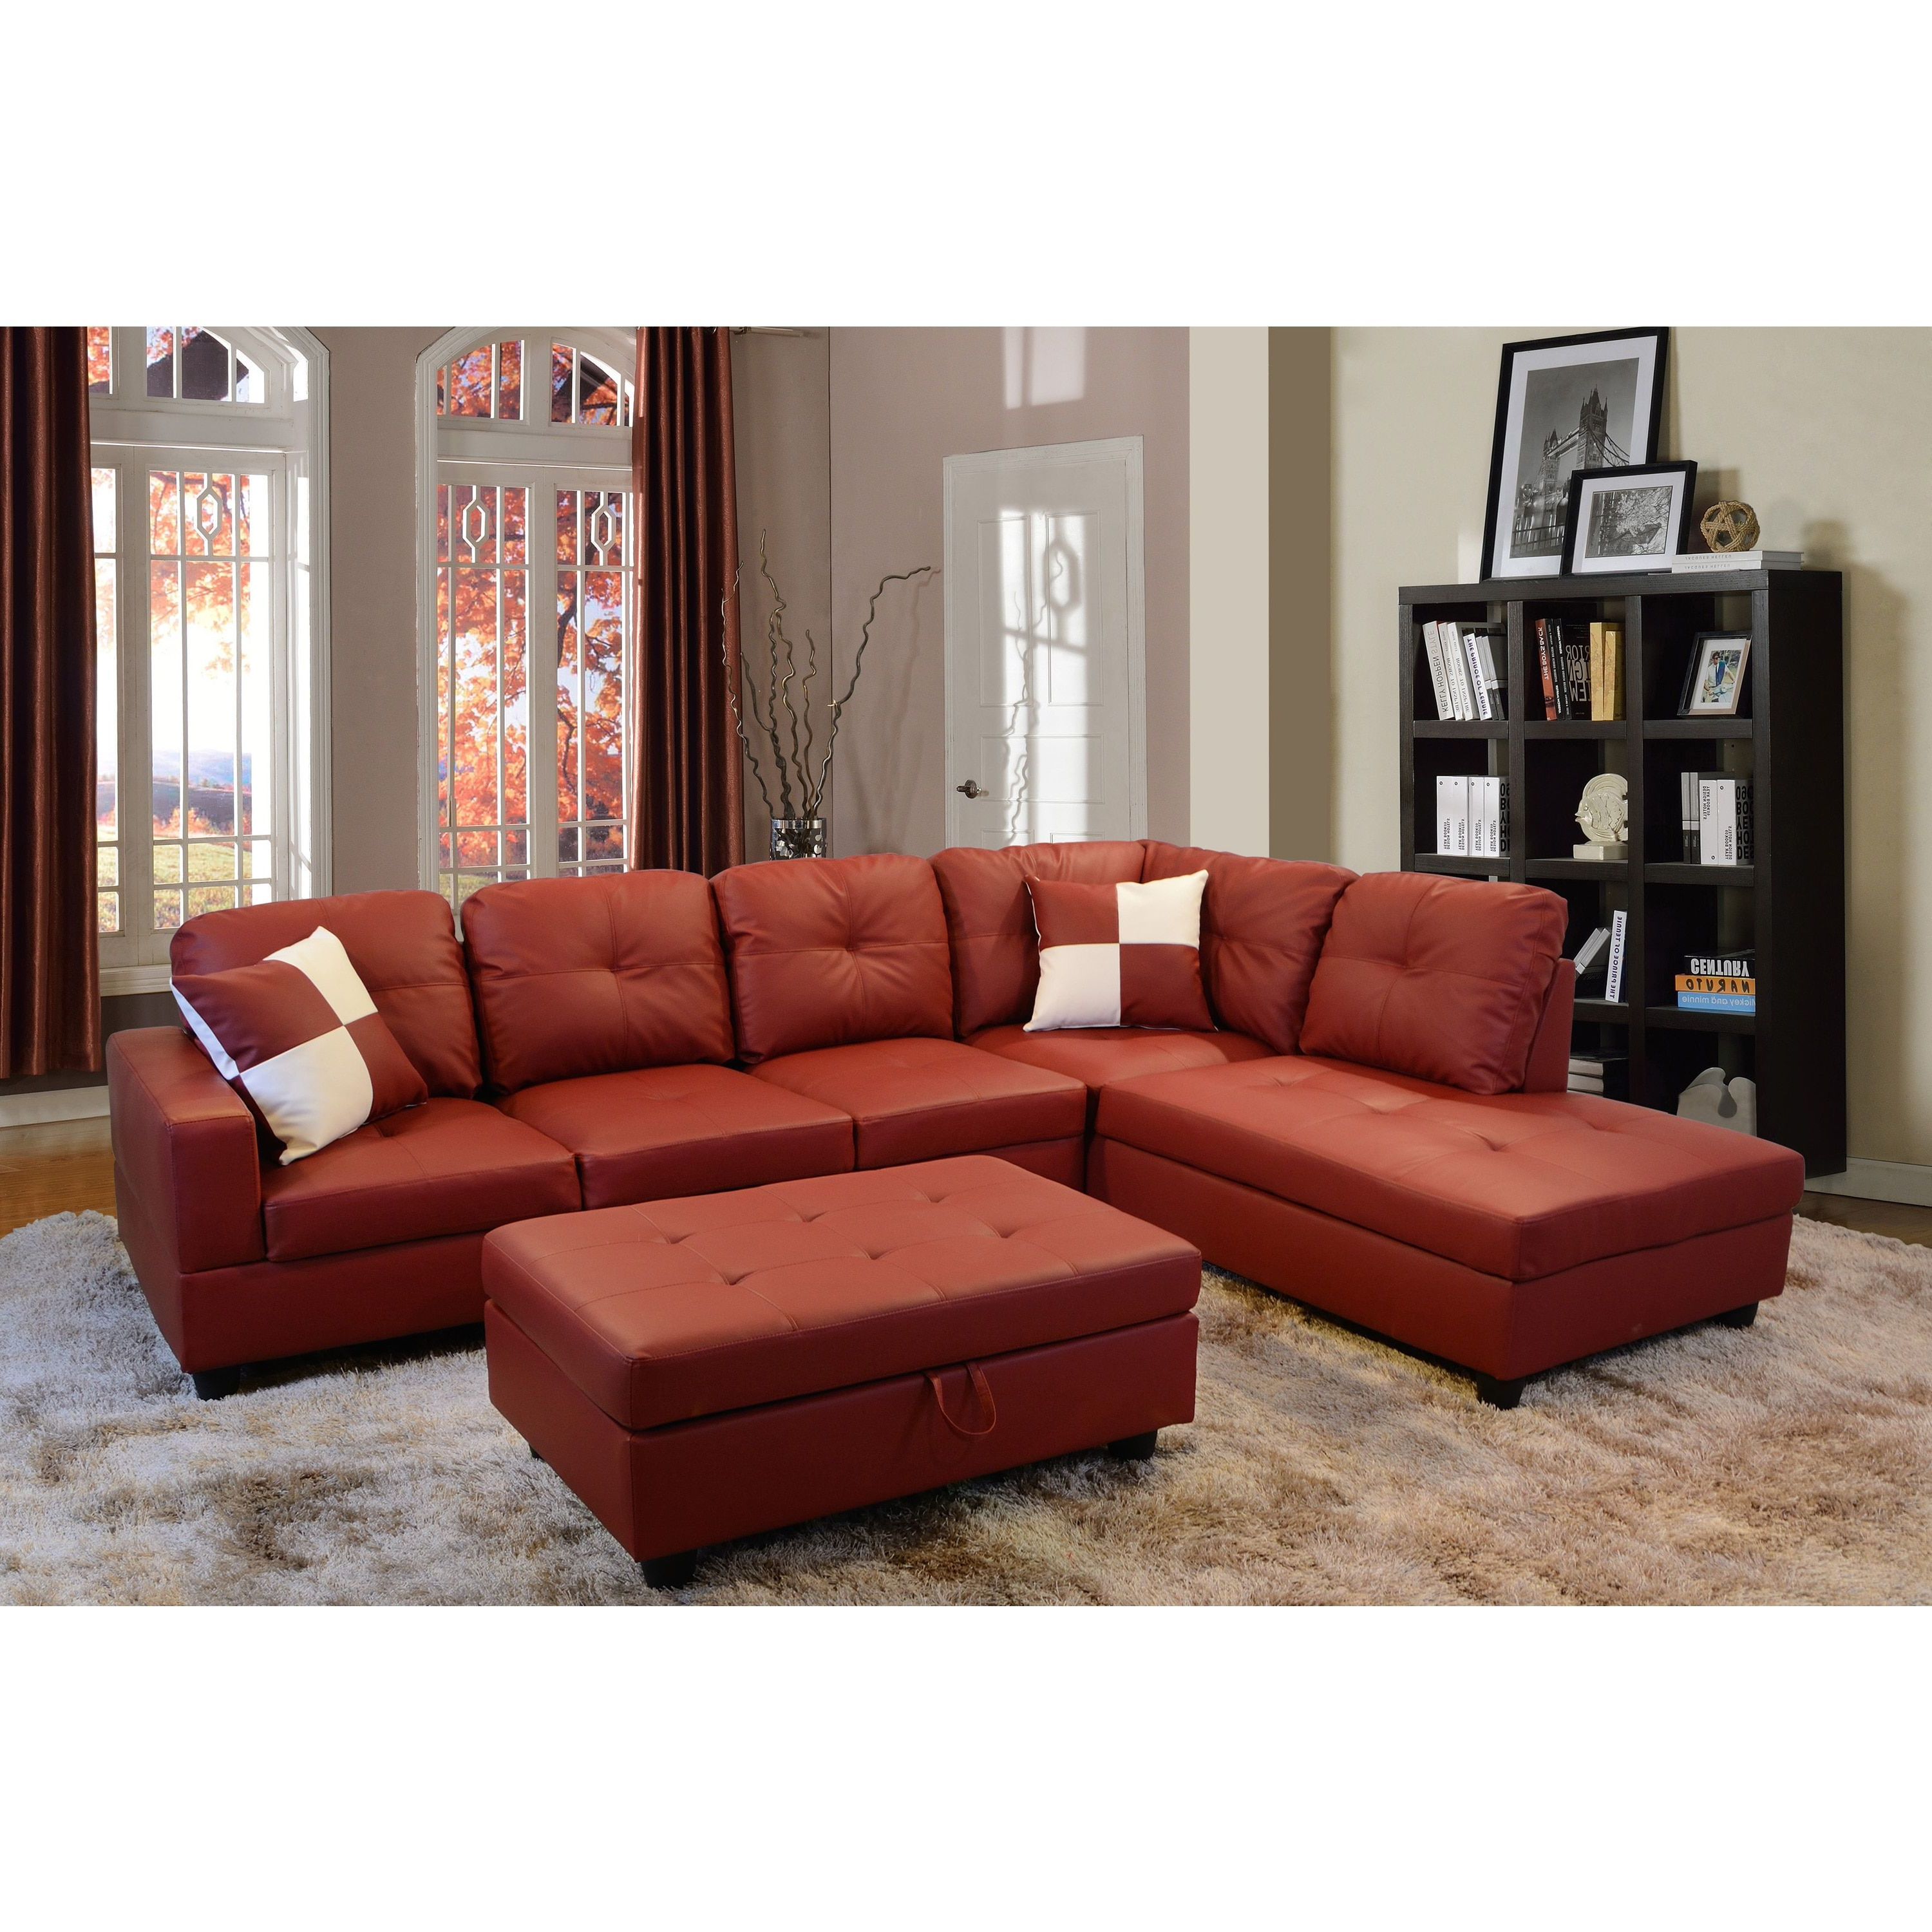 Delma 3 Piece Red Faux Leather Furniture Set (Delma 3 Pc Faux Pertaining To Fashionable Tenny Dark Grey 2 Piece Right Facing Chaise Sectionals With 2 Headrest (View 5 of 20)